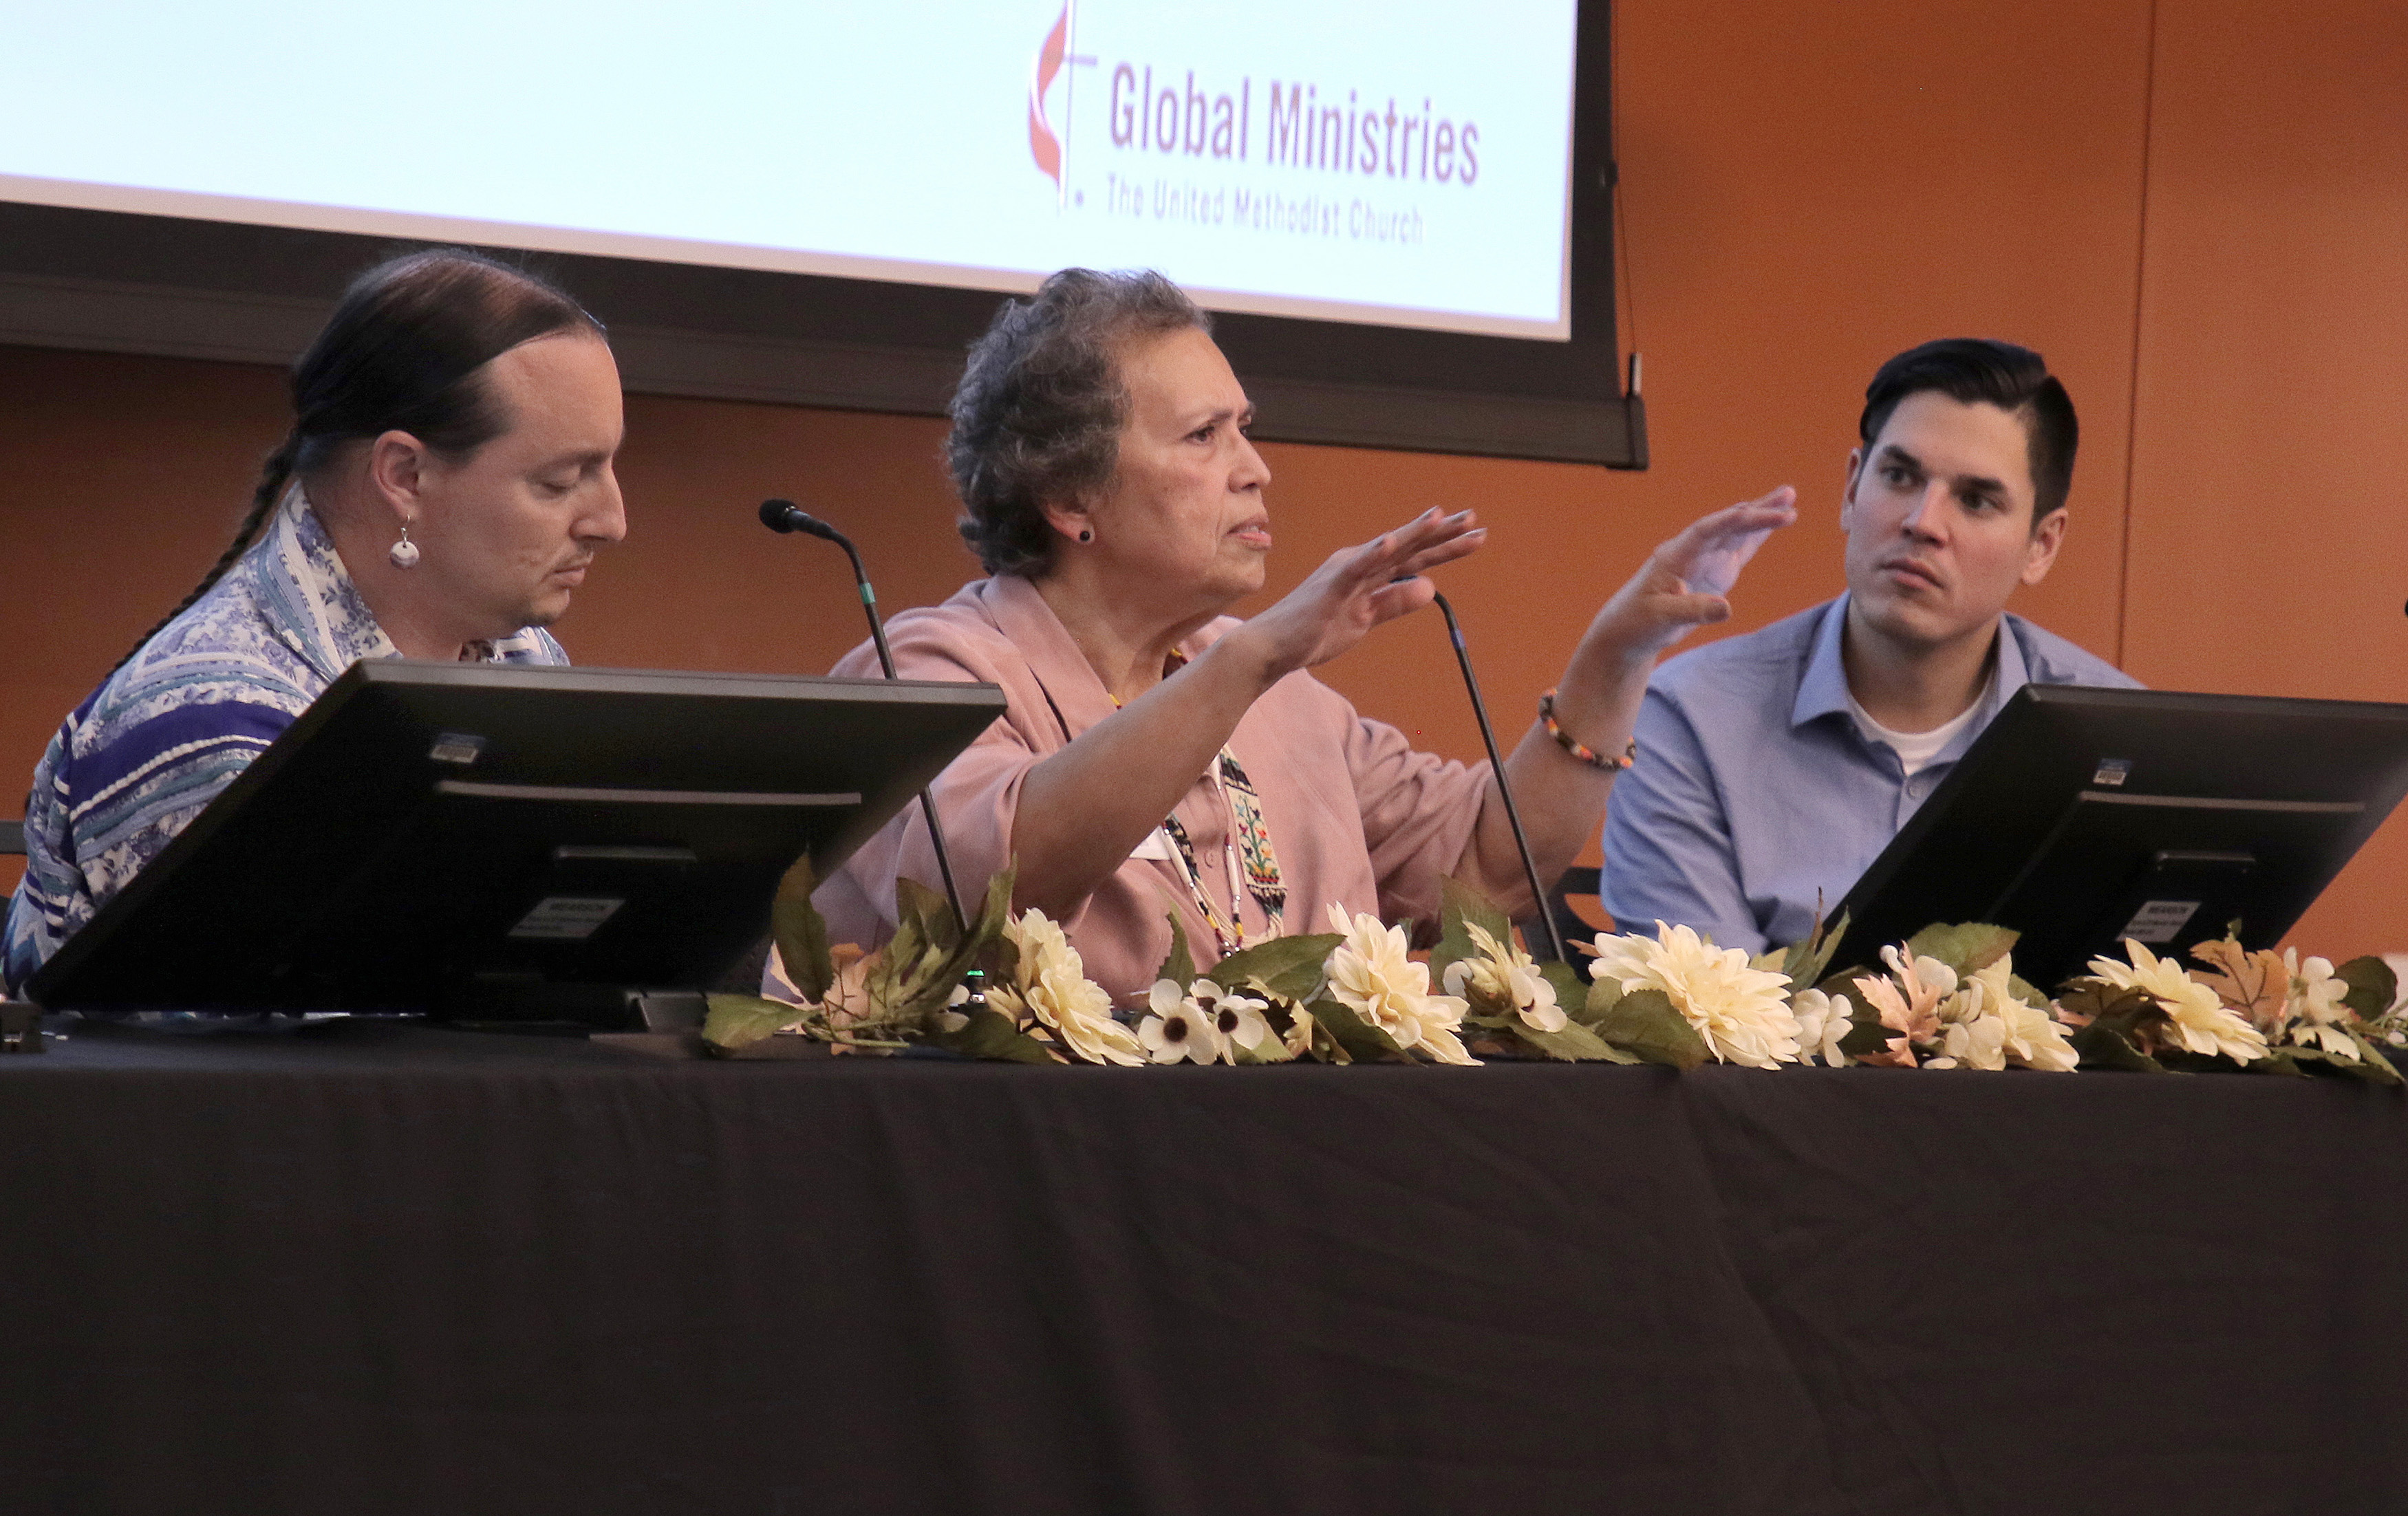 """Marcus Briggs-Cloud, the Rev. Anita Phillips and filmmaker John Little lead a panel discussion after the screening of """"More Than a Word"""" during the fall meeting of the Board of Global Ministries. Photo by Anthony Trueheart, Global Ministries."""